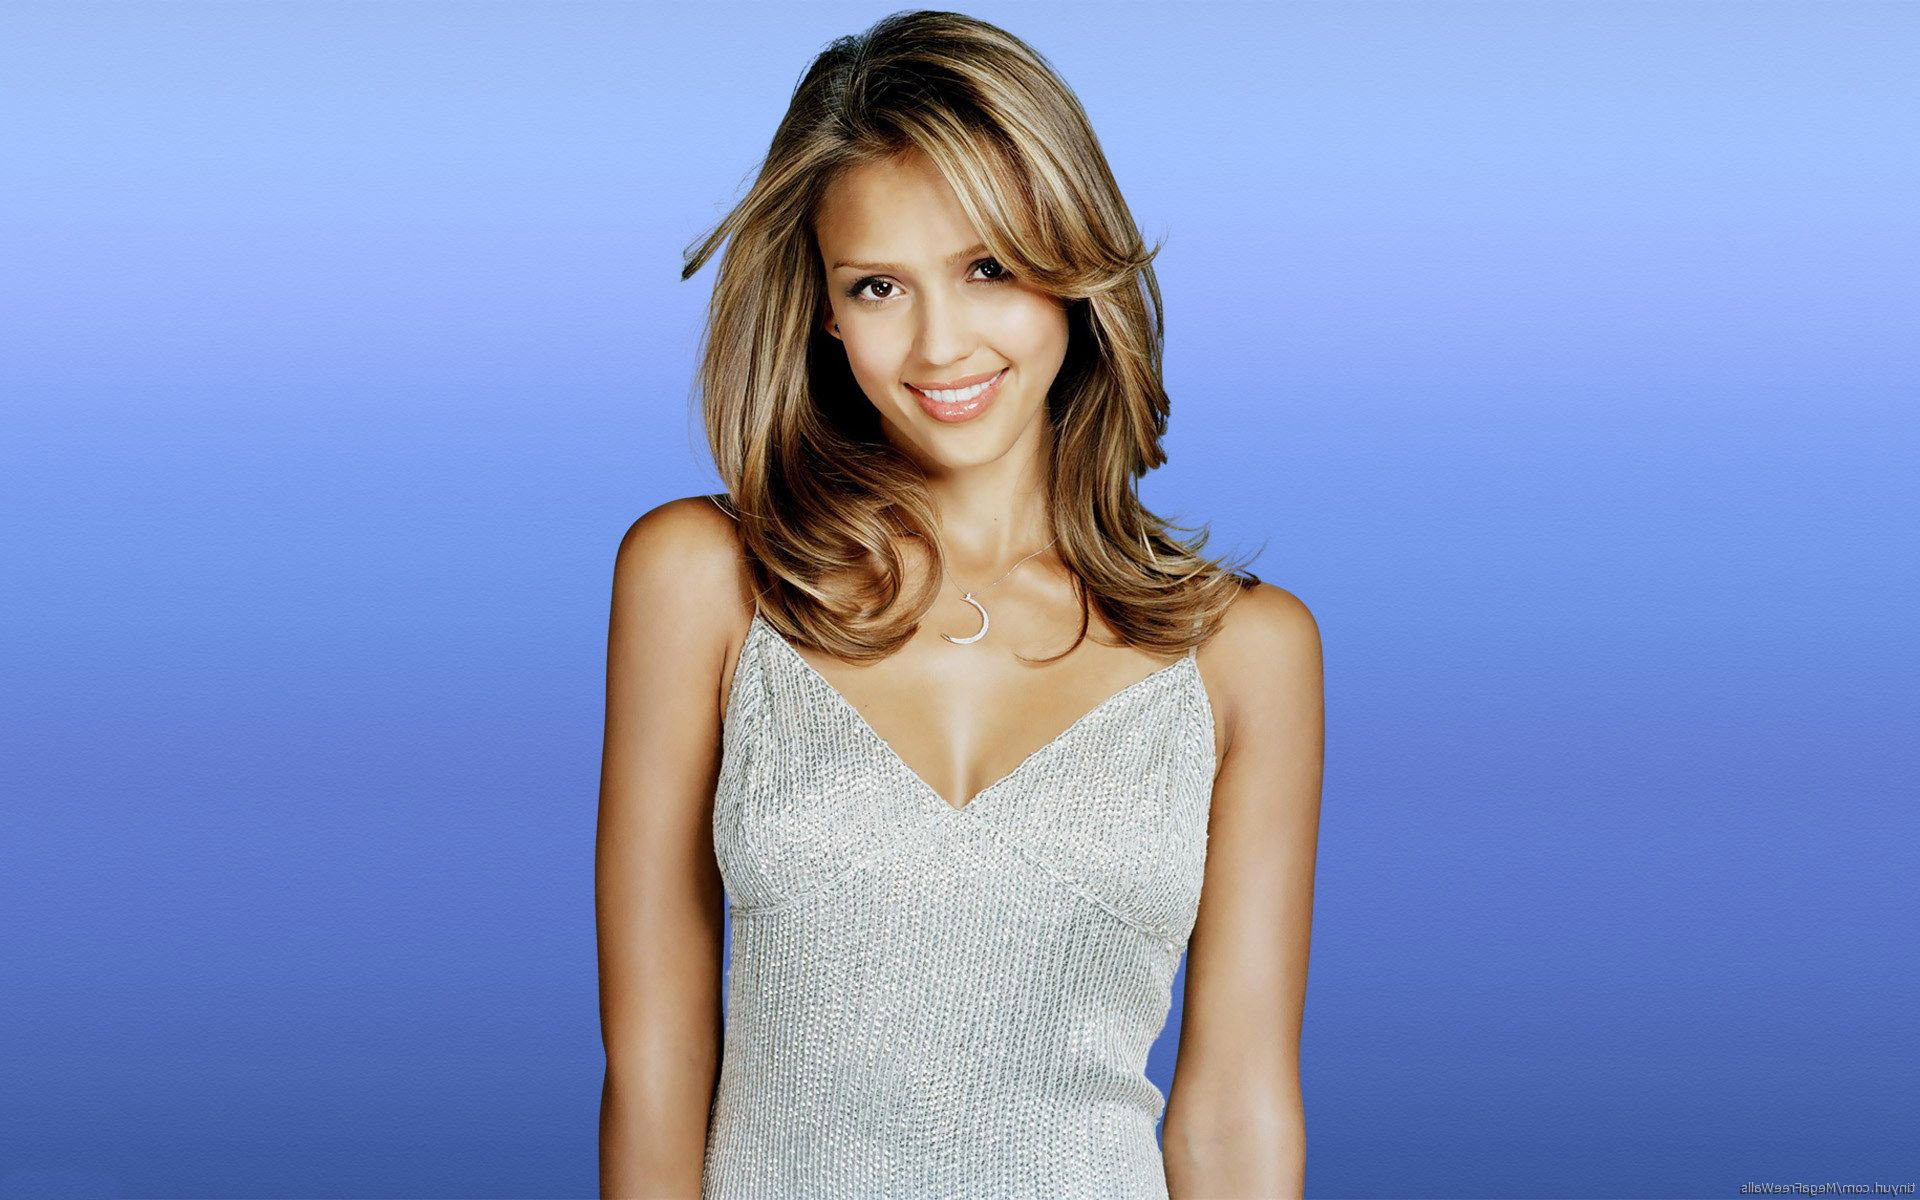 Sexy Jessica Alba Wallpaper Hd for PC (49)